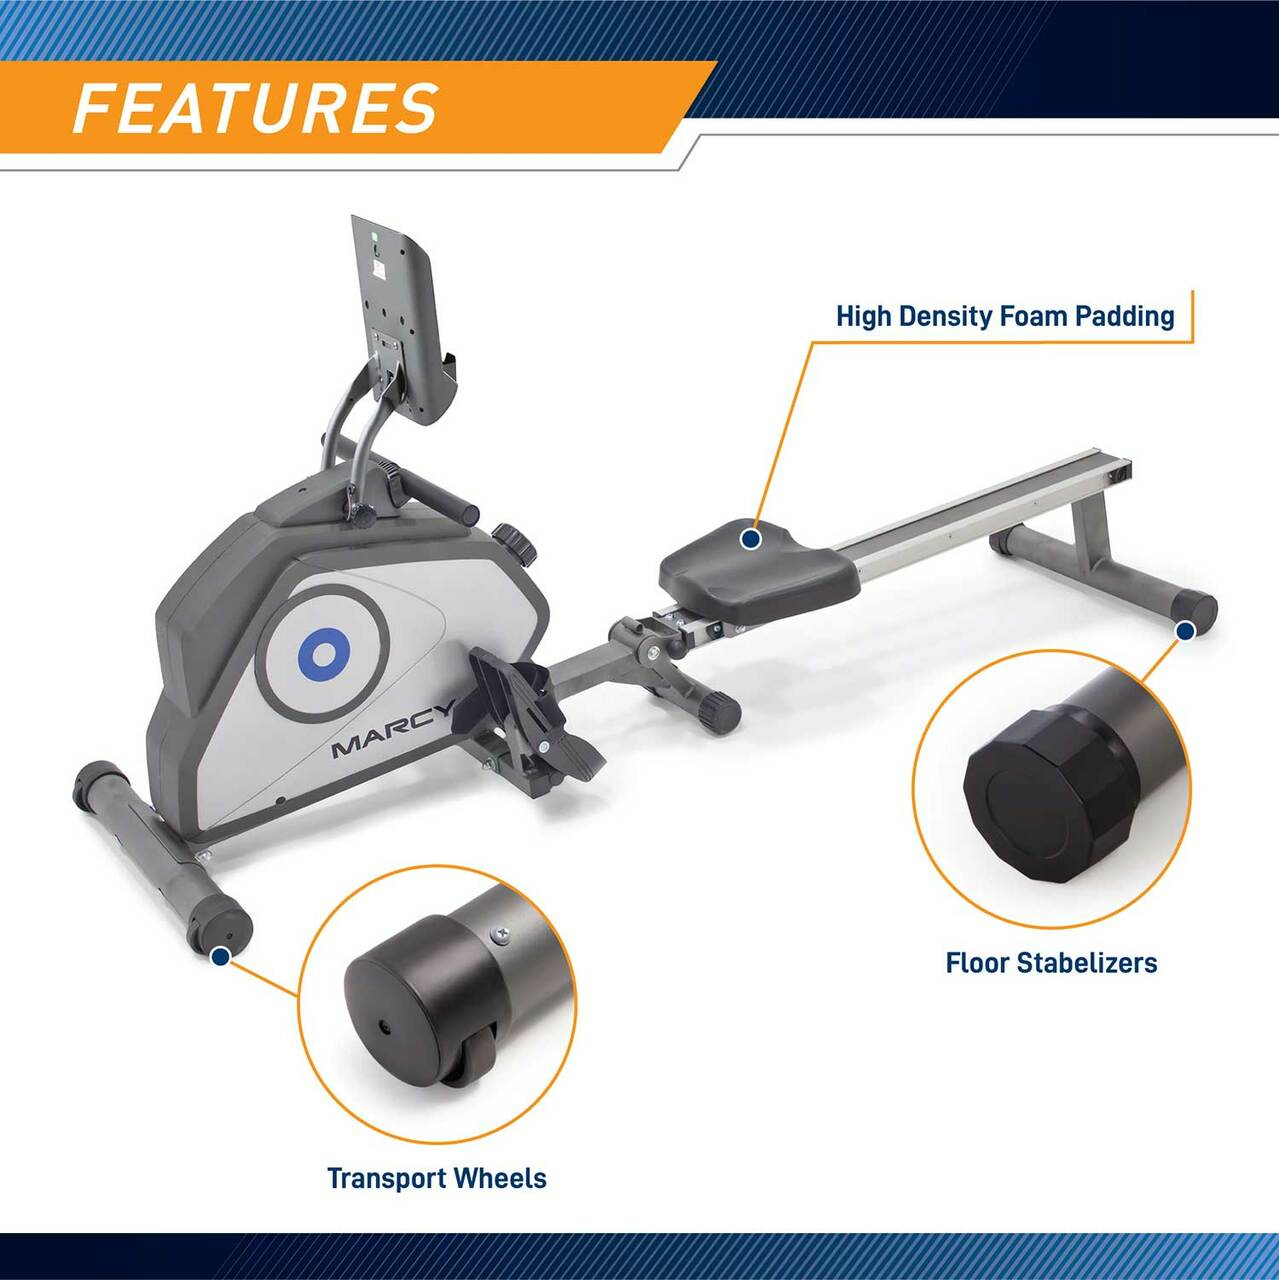 The Rowing Machine Marcy NS-40503RW has transportation wheels to help move the rower easily